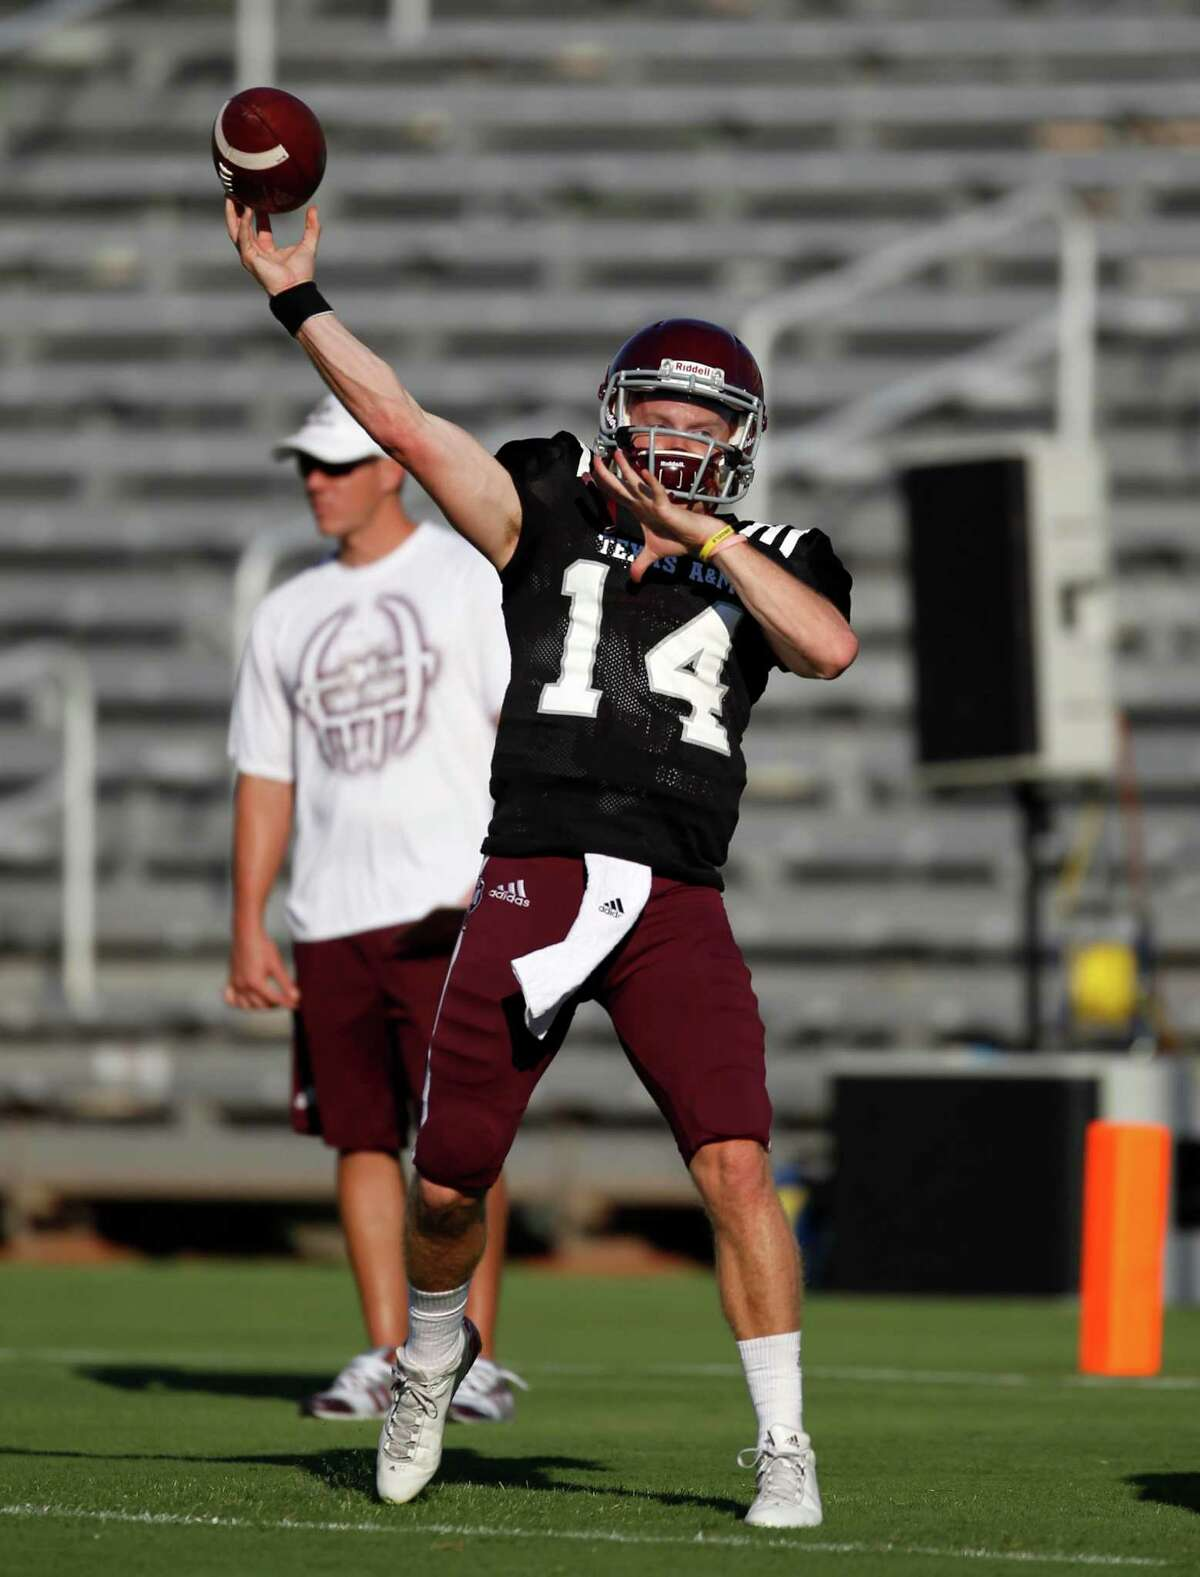 Texas A&M quarterback Connor McQueen warms up before an intersquad scrimmage game, Saturday, August 17, 2013 at Kyle Field in College Station, TX.